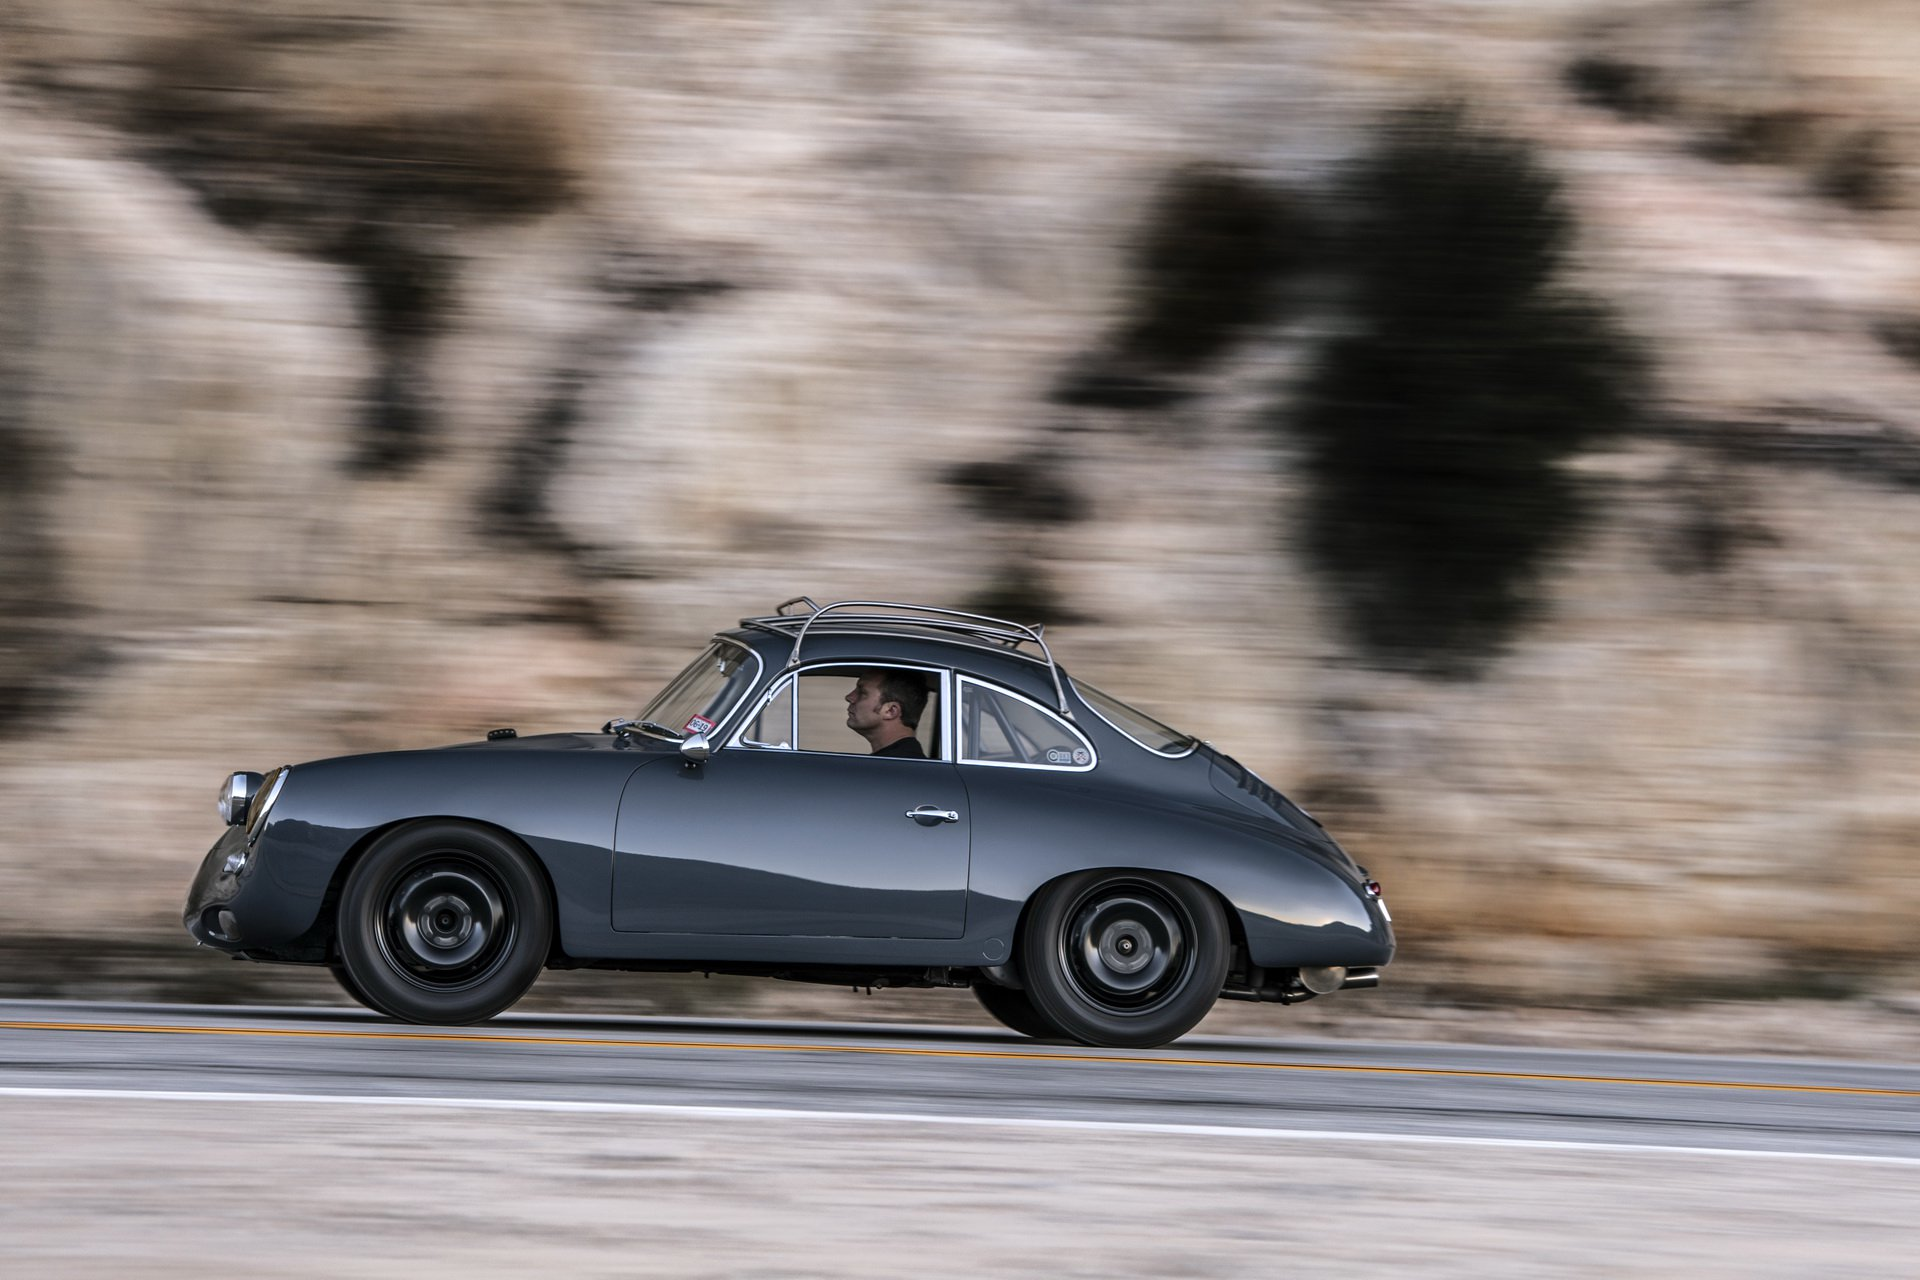 AWD Porsche 356 Coupe by Emory Motorsports (26)